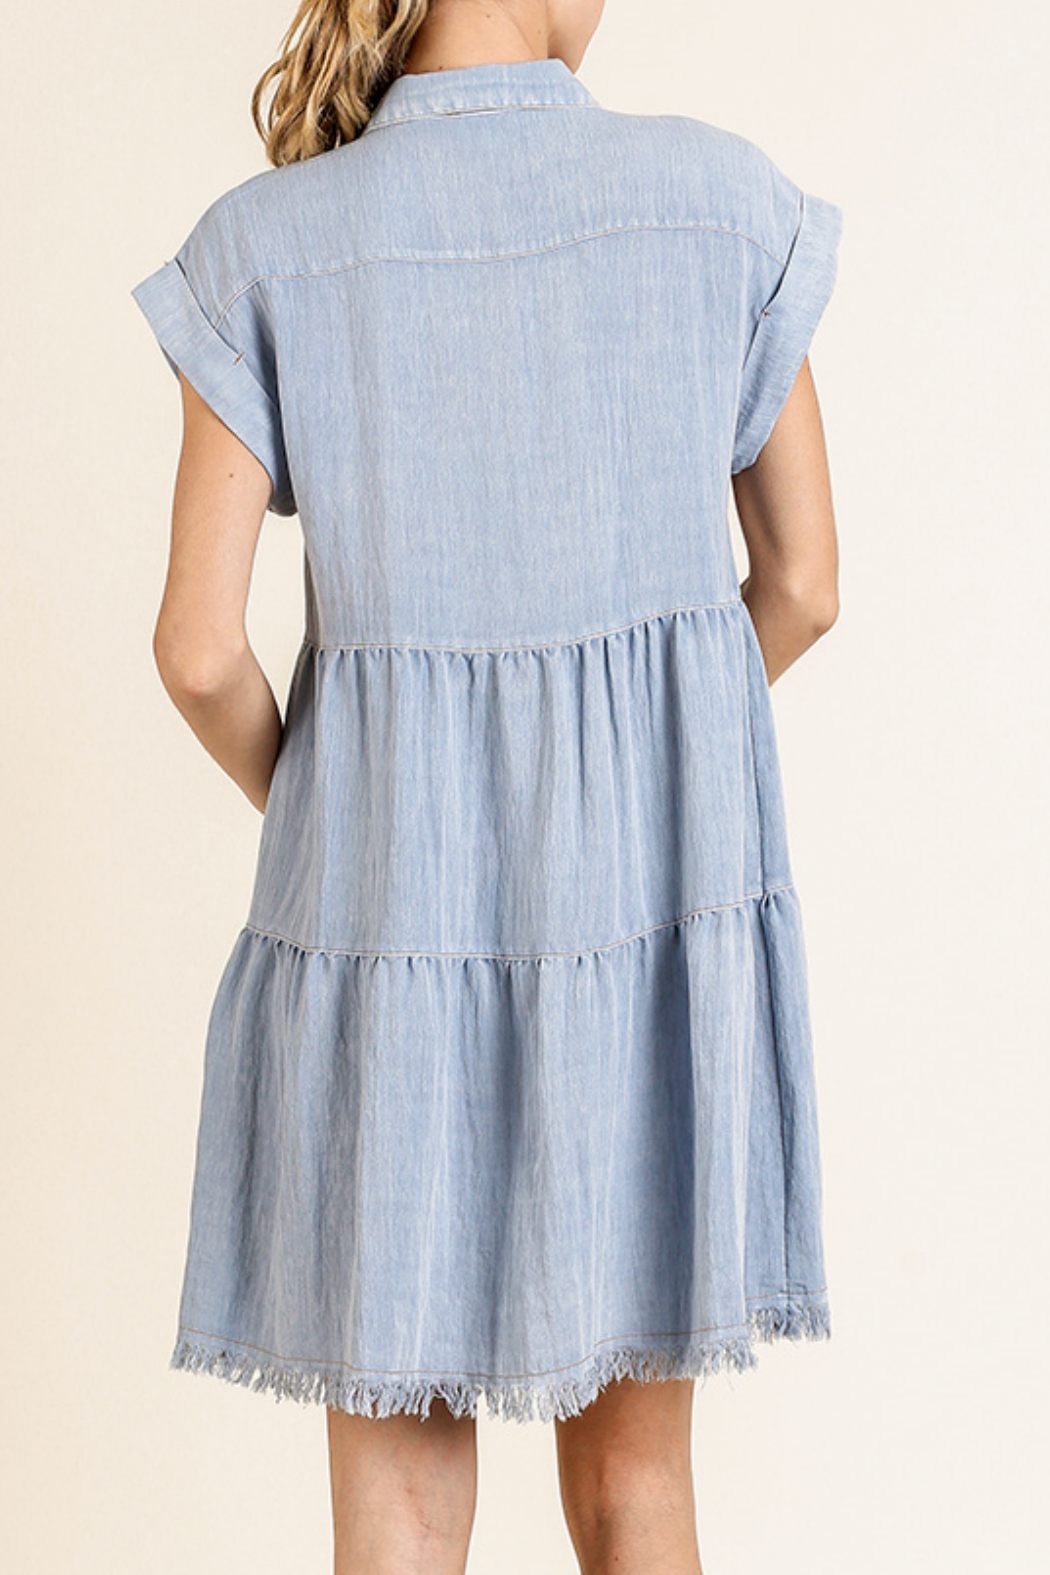 Umgee  Collared Ruffle Dress - Front Full Image